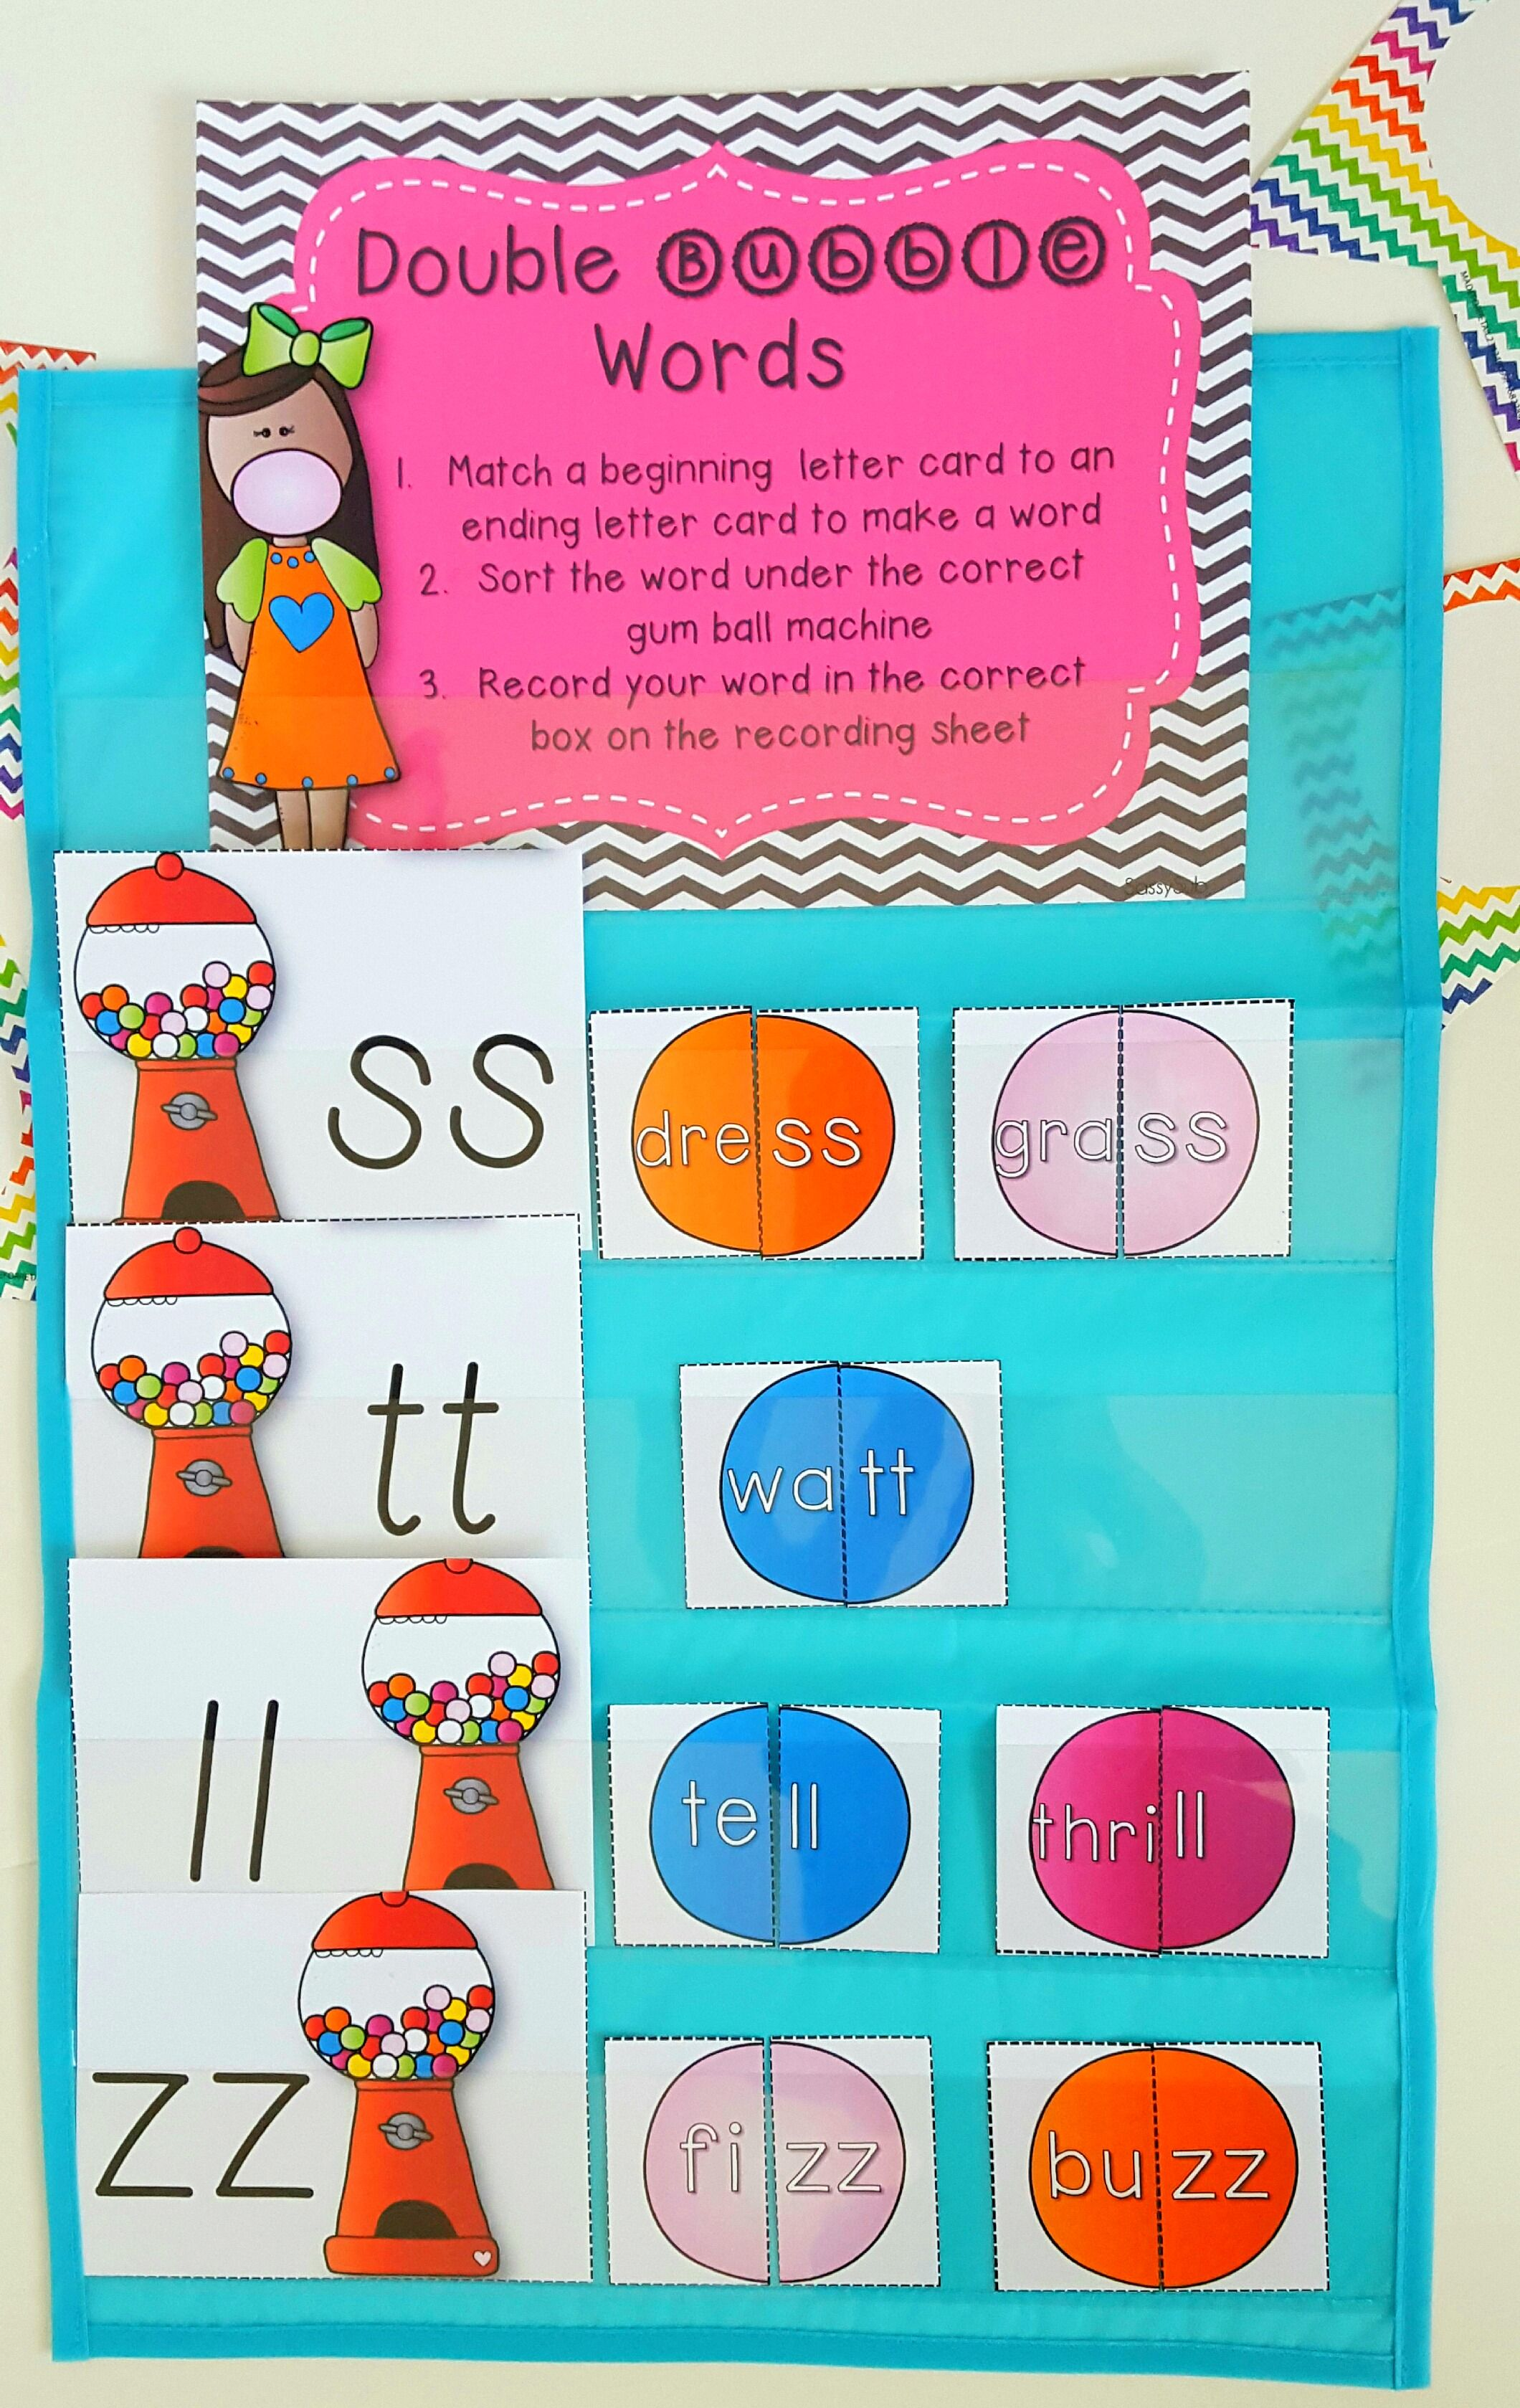 These Resources For Teaching Practicing And Reviewing Words With Double Consonants Are The Perfect Supplement To Your Phonics Lesson On Those Tricky